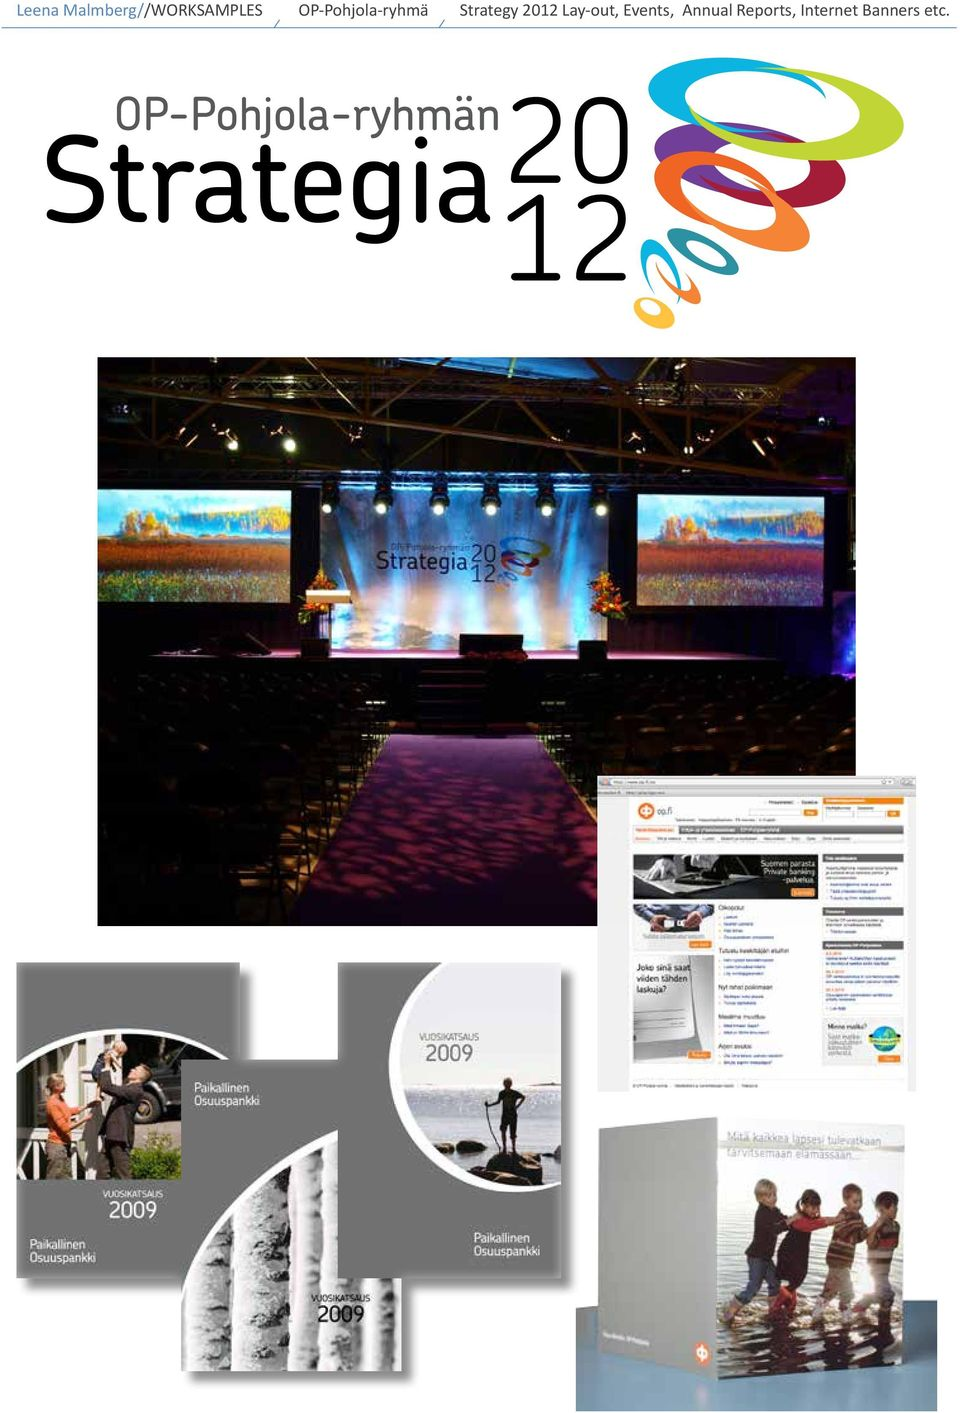 2012 Lay-out, Events, Annual